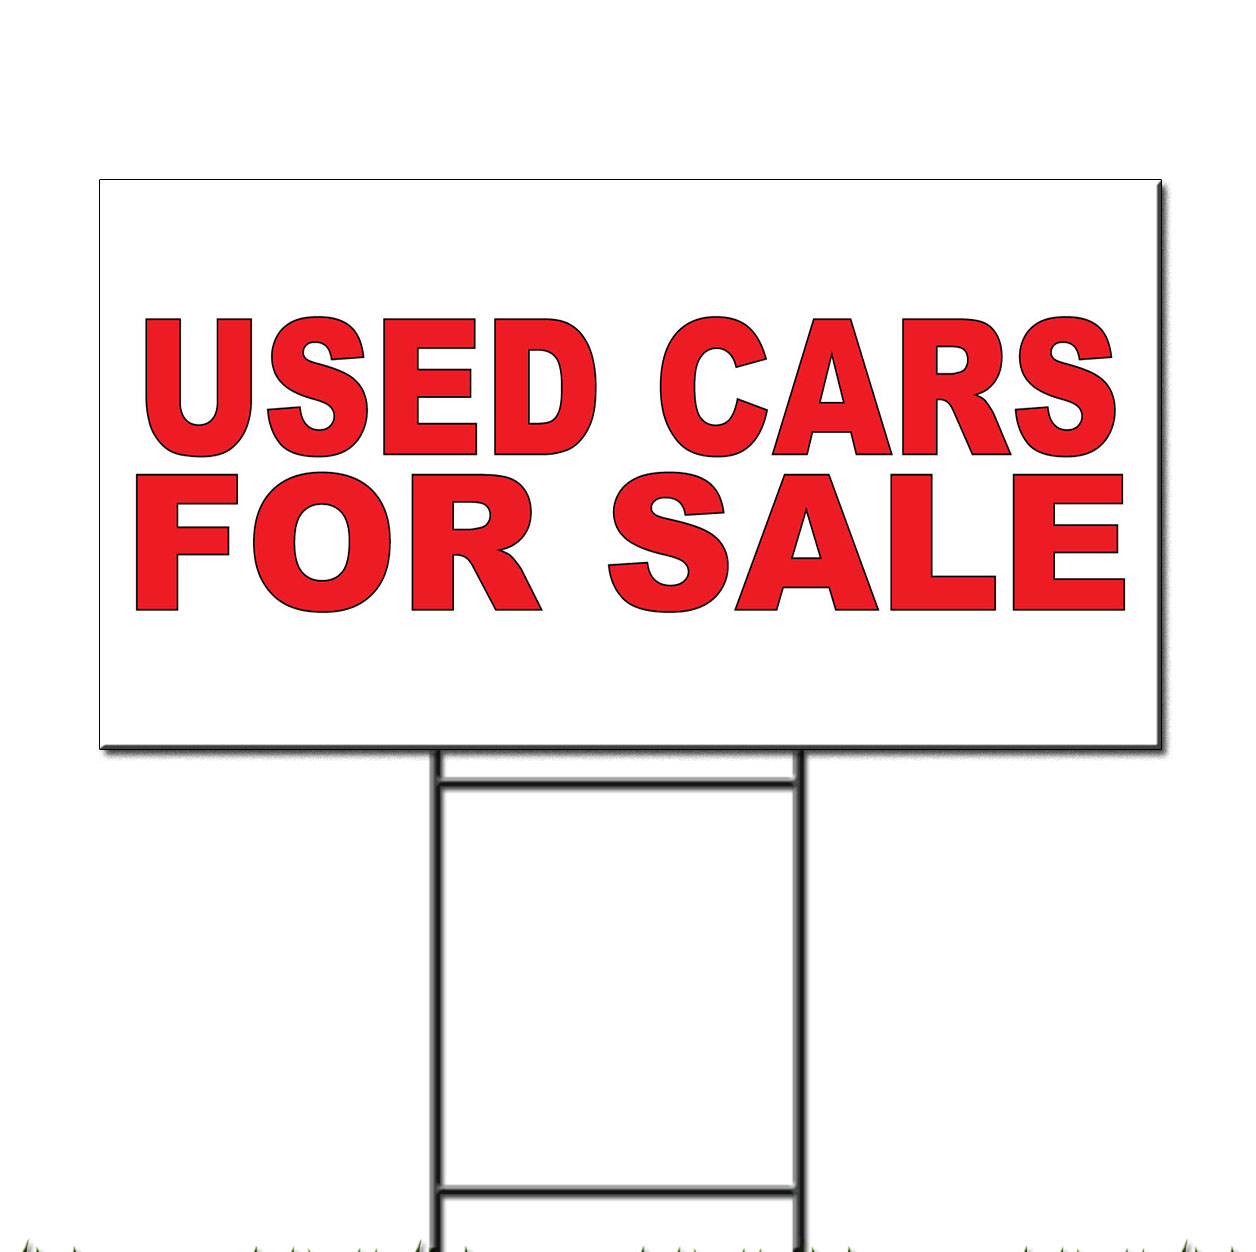 Used Cars For Sale Red Corrugated Plastic Yard Sign /Free